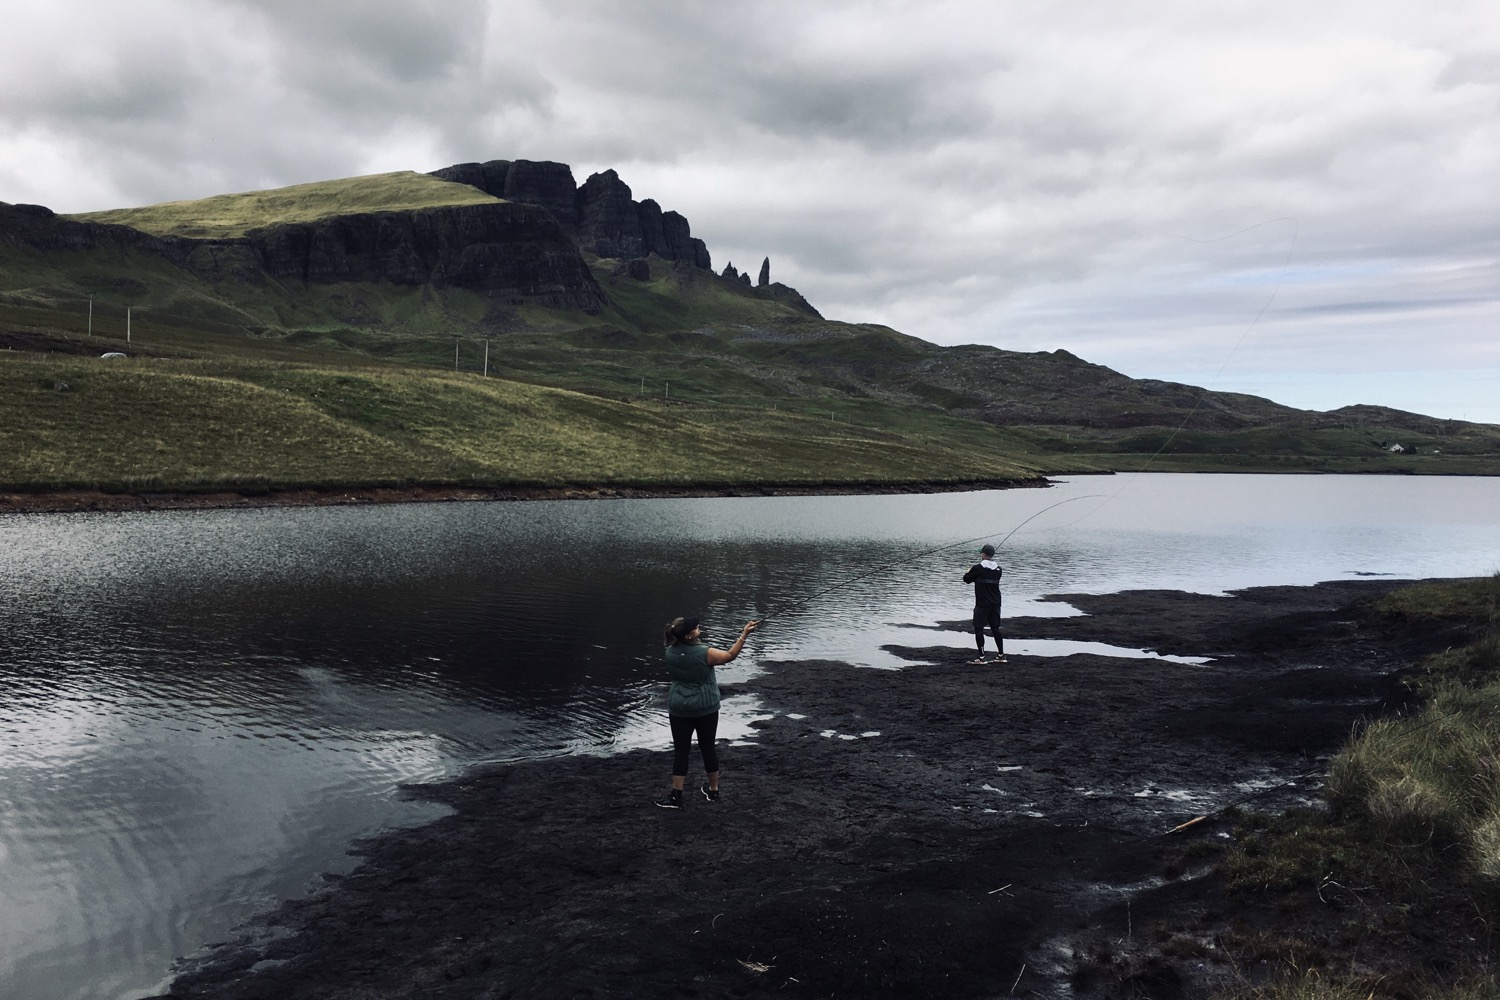 Guests fishing at the Storr Loch